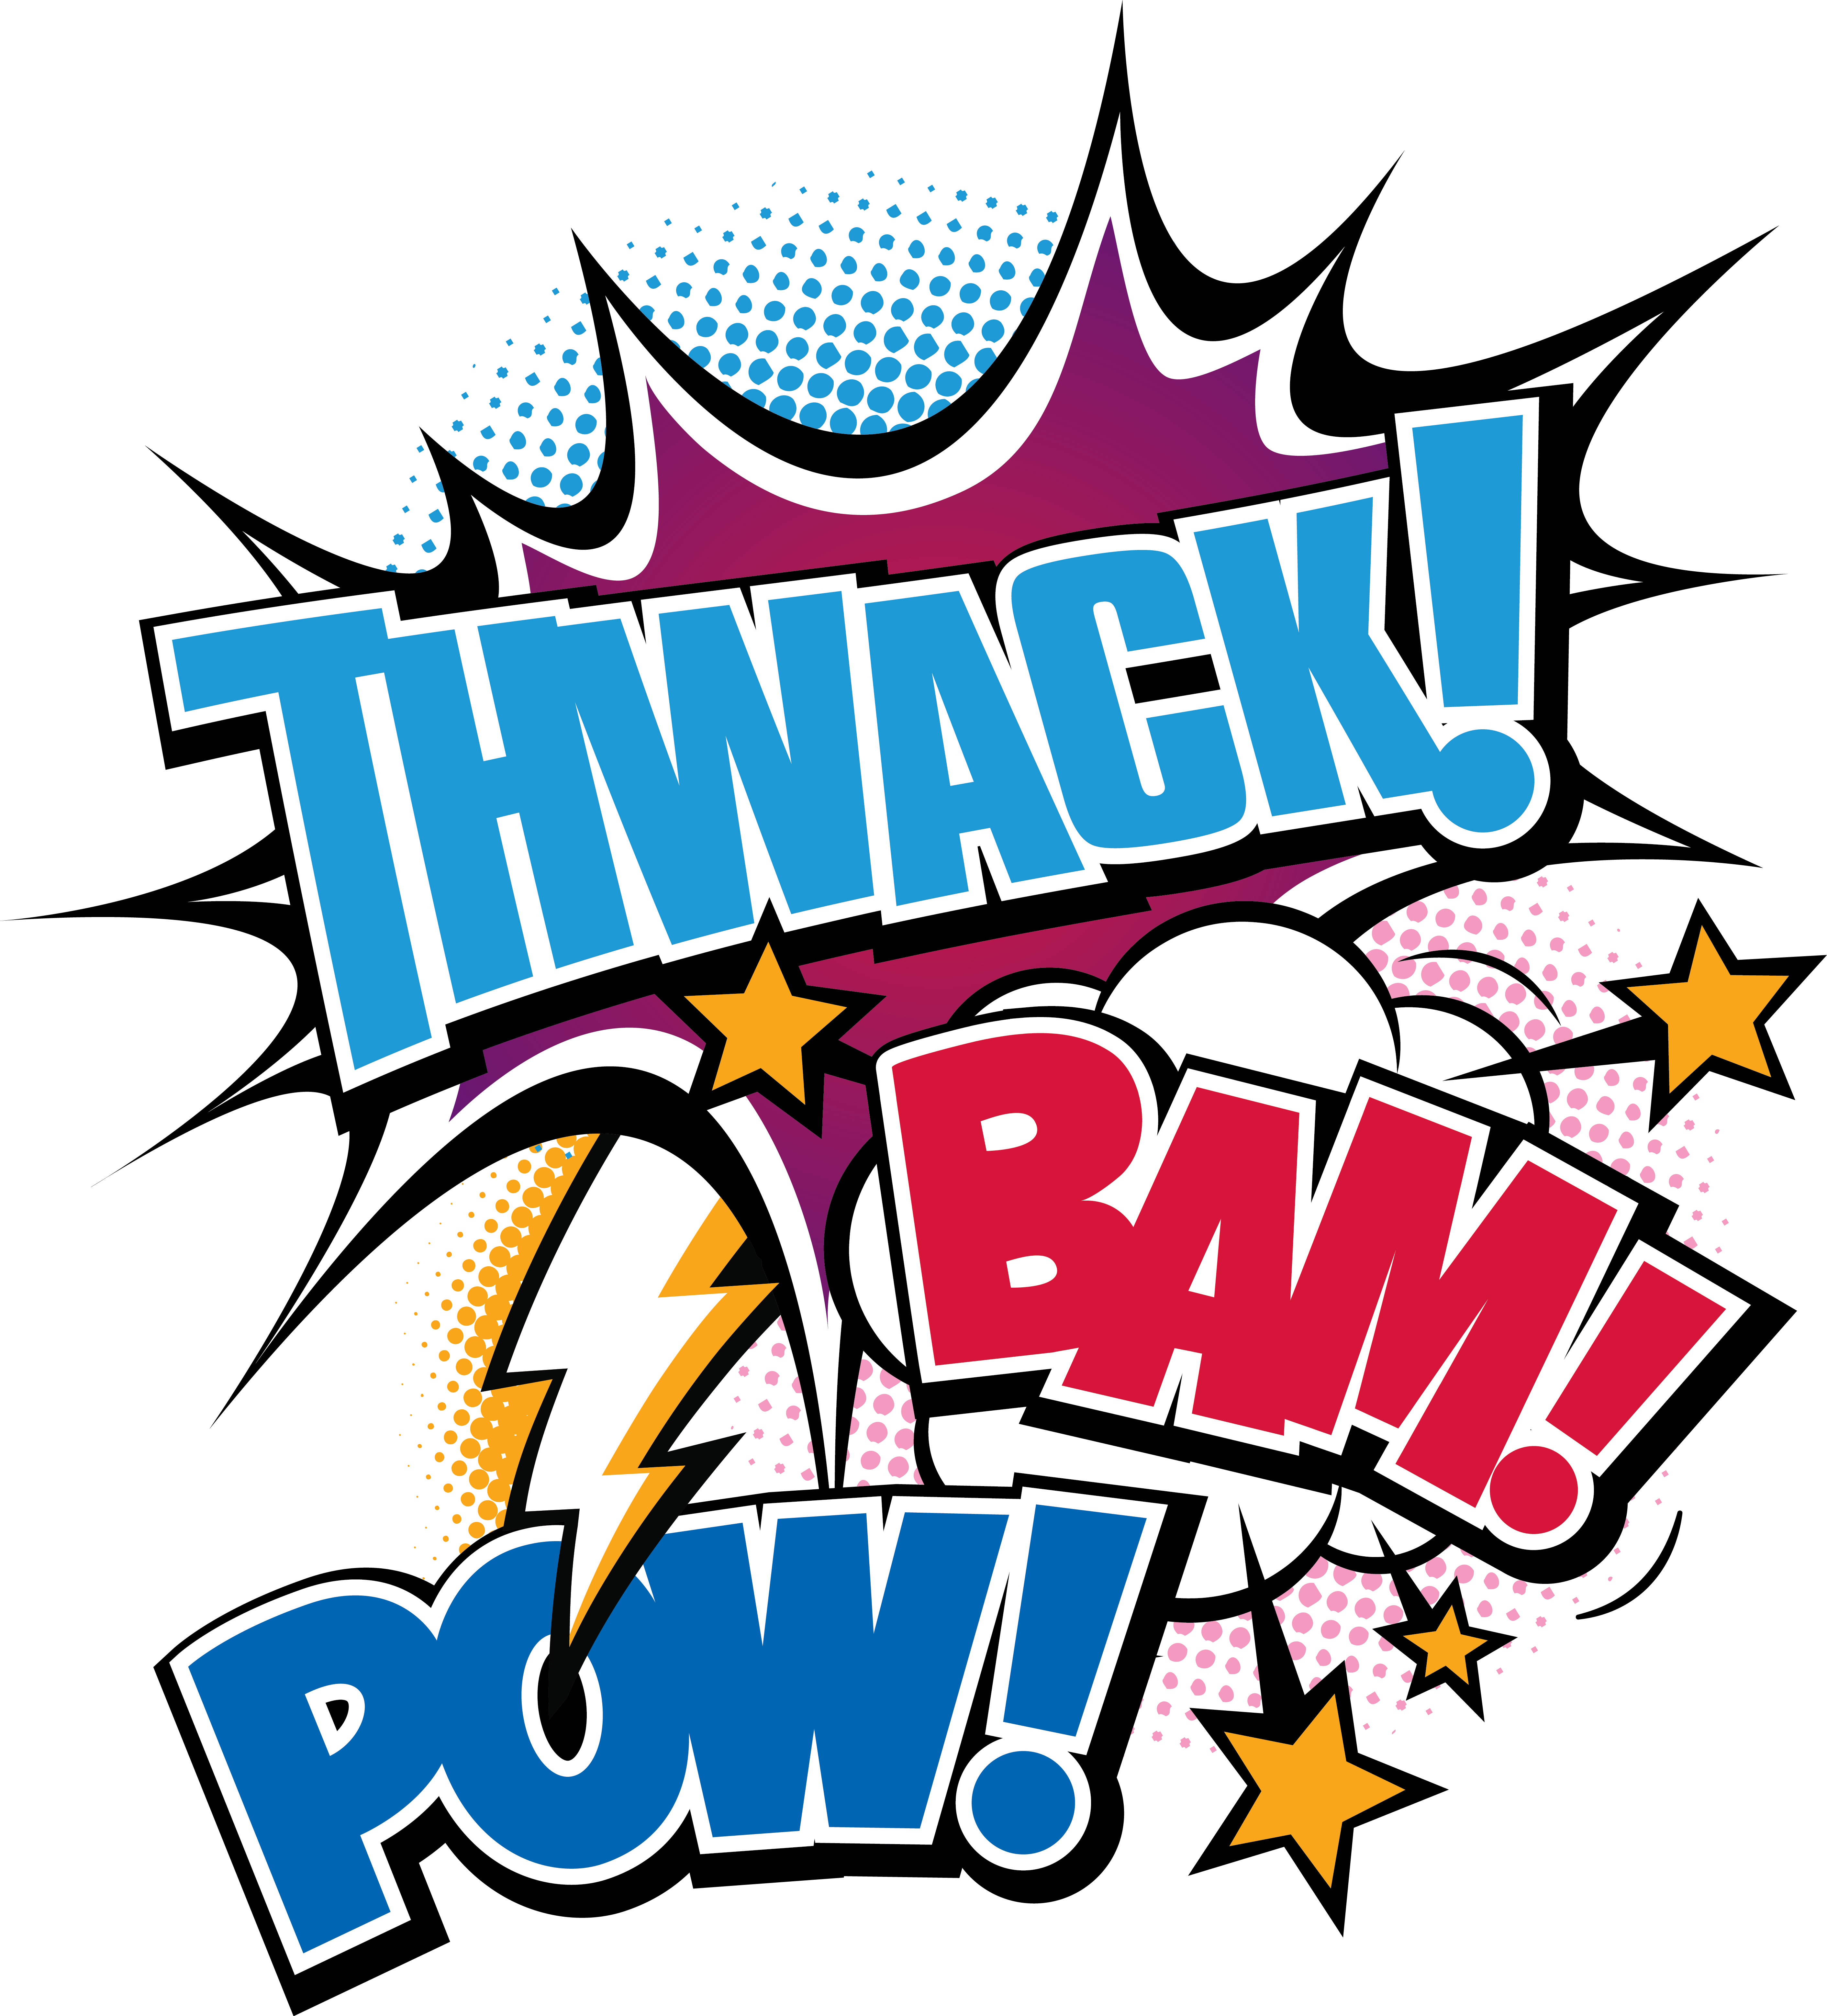 Outside clipart outdoor playtime. Twack bam pow color